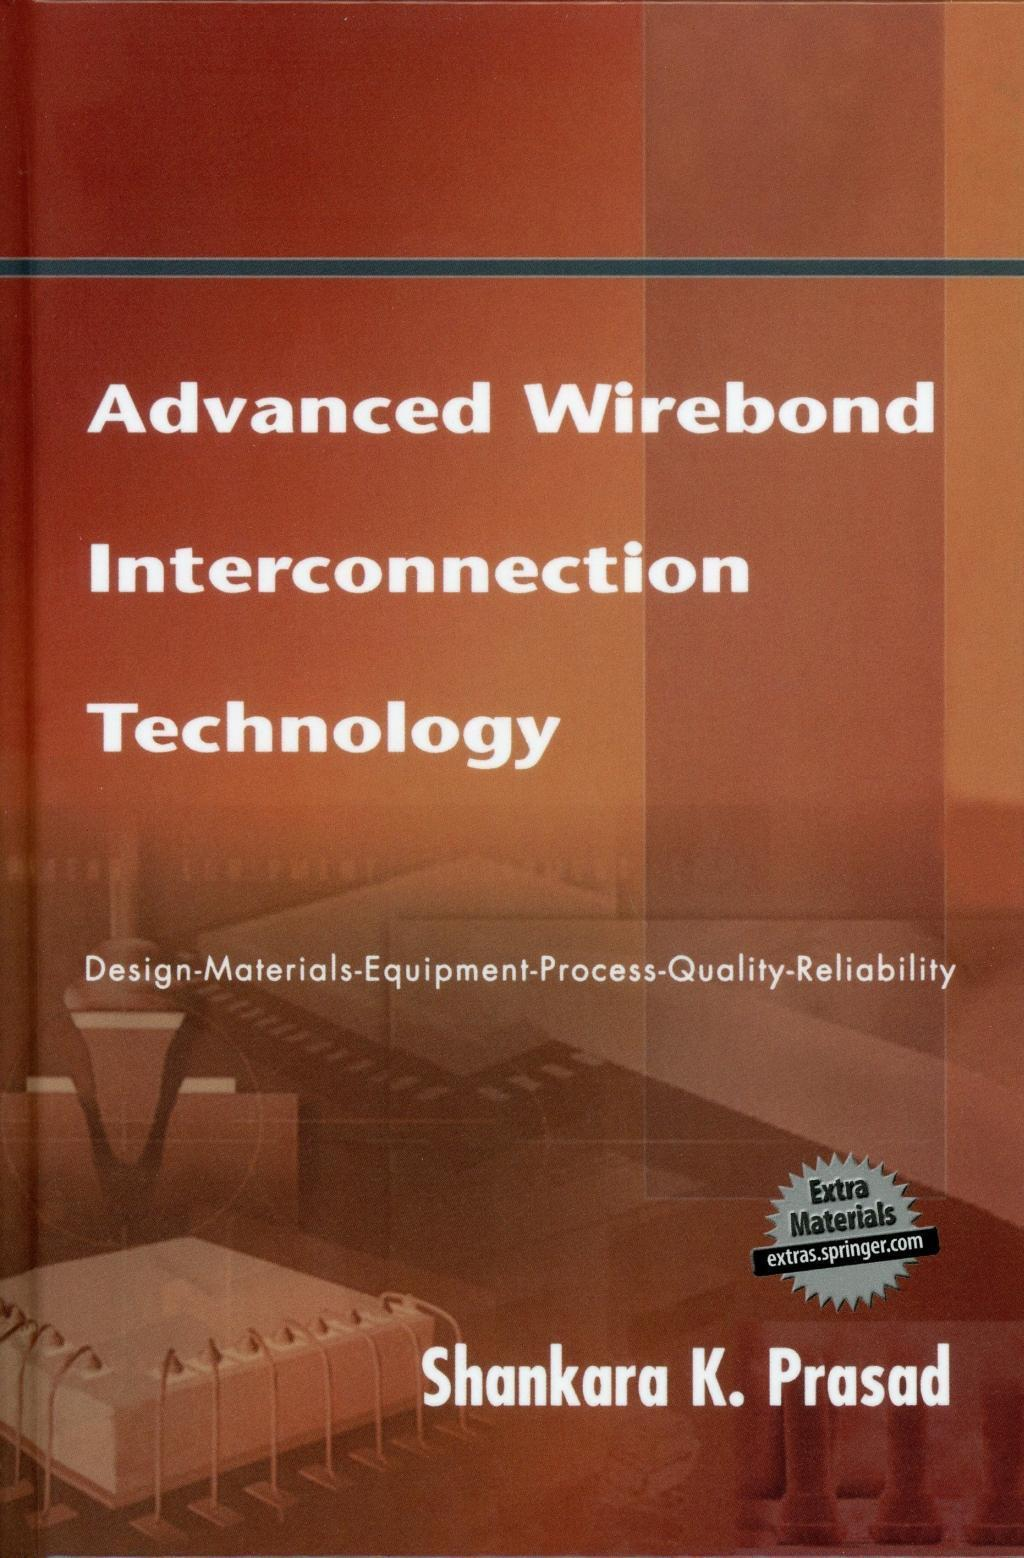 Advanced Wirebond Interconnection Technology Shankara K. Prasad